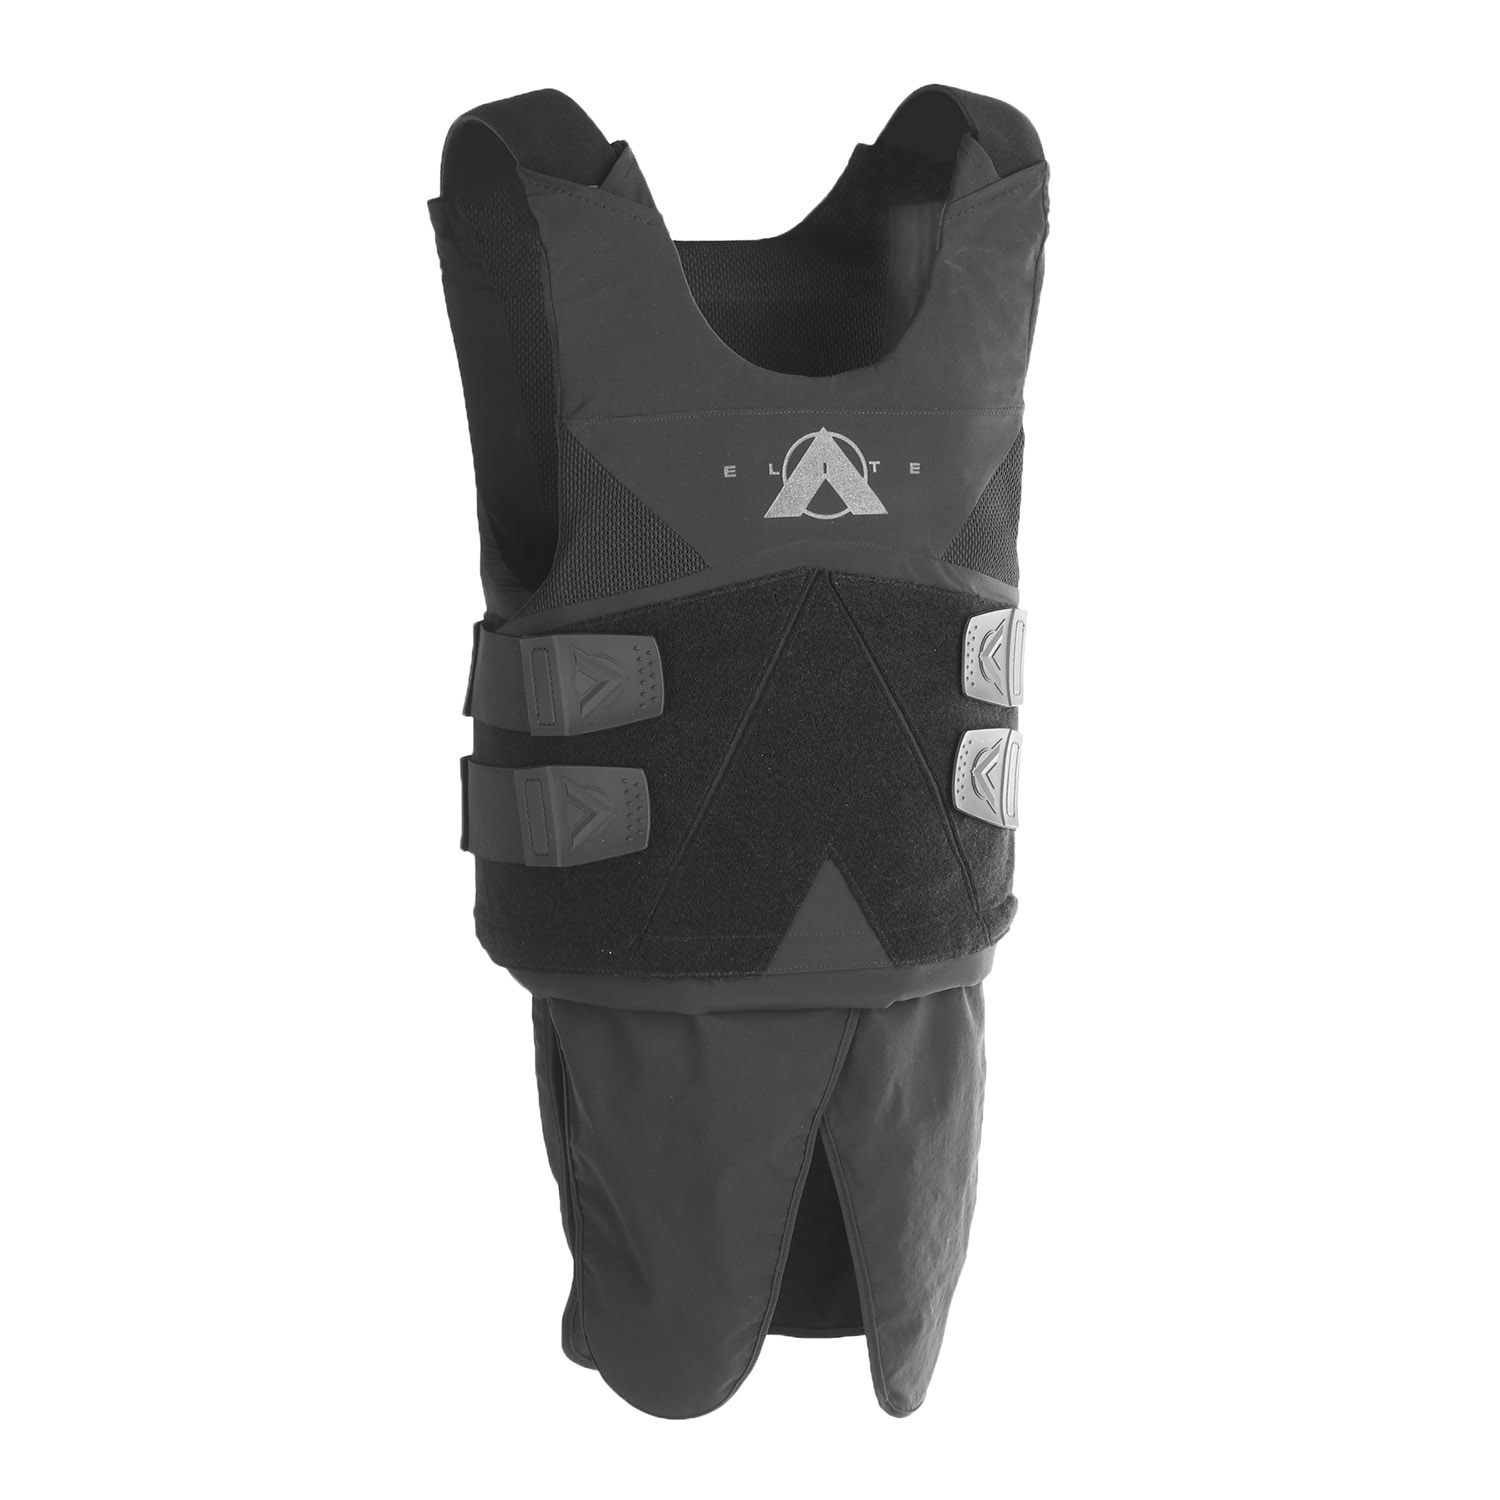 Point Blank Alpha Elite AXIIIA vest with Elite Carrier